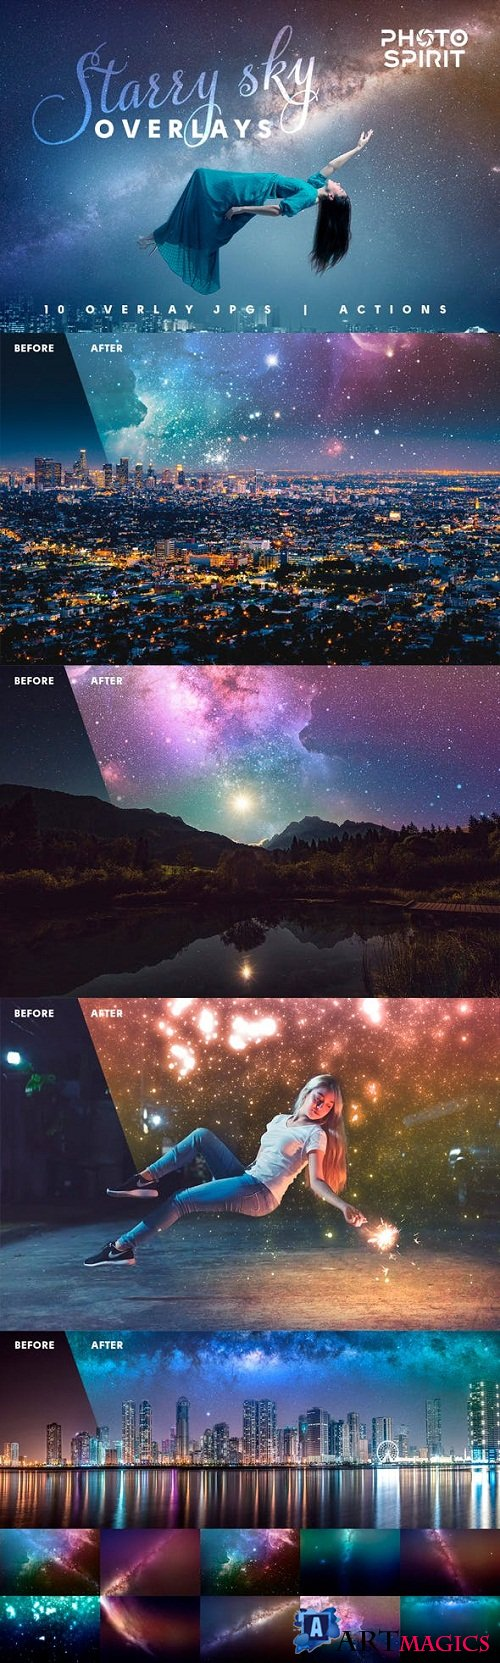 Night Sky Starry Overlays + Actions - 23023016